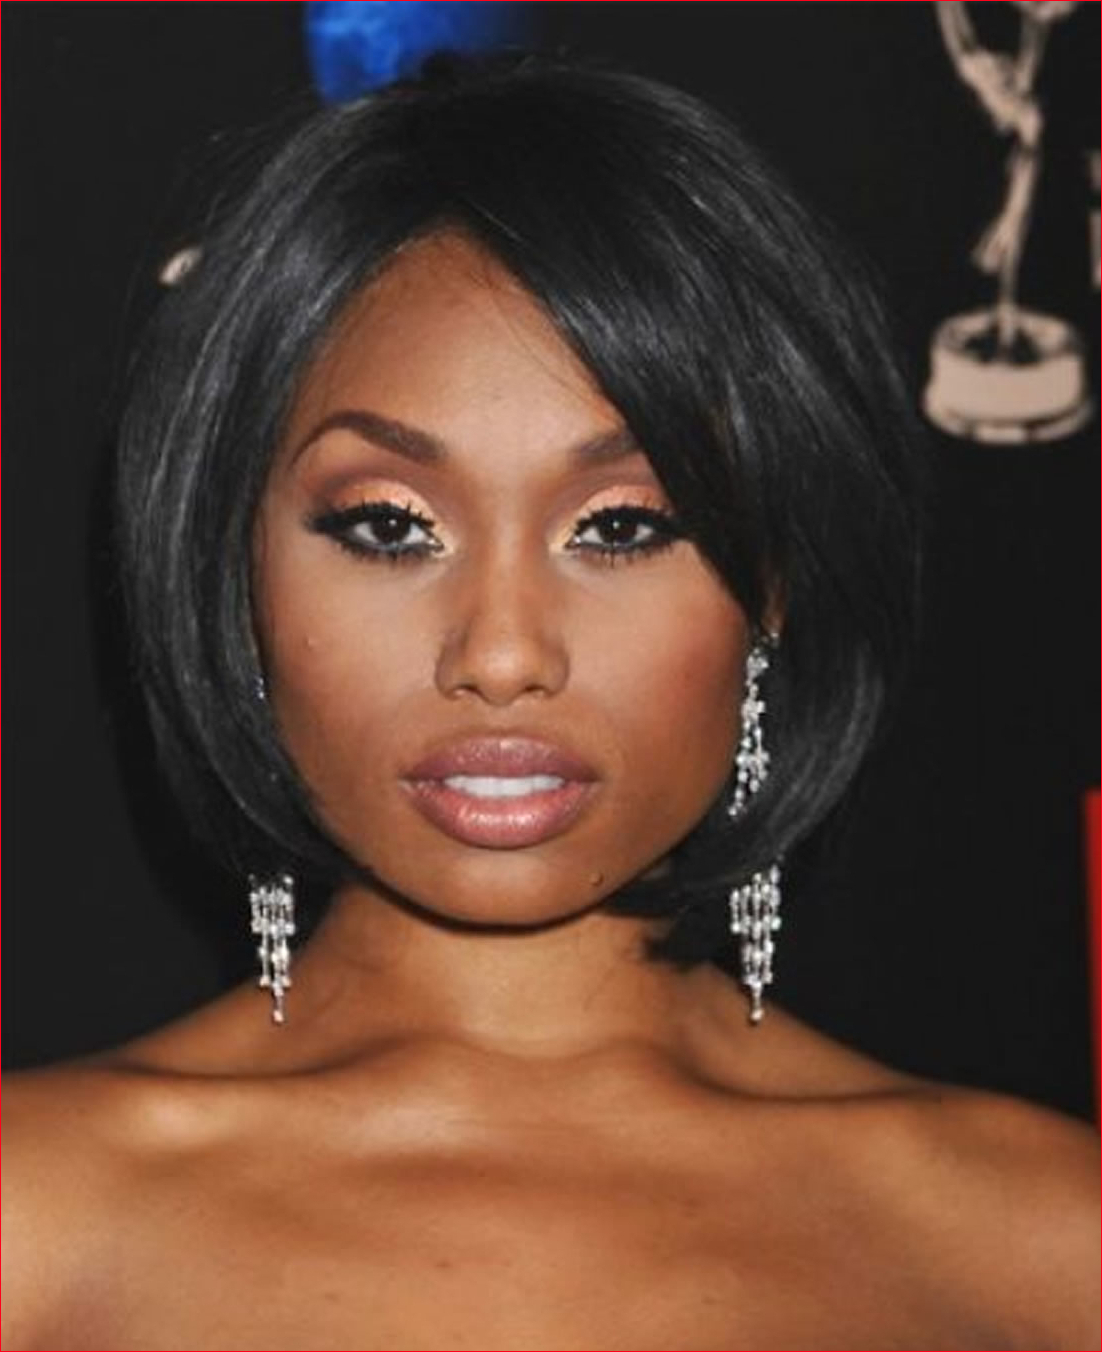 African American Short Hairstyles For Round Faces » Best Easy Hairstyles Regarding Short Hairstyles For Round Faces African American (View 3 of 25)